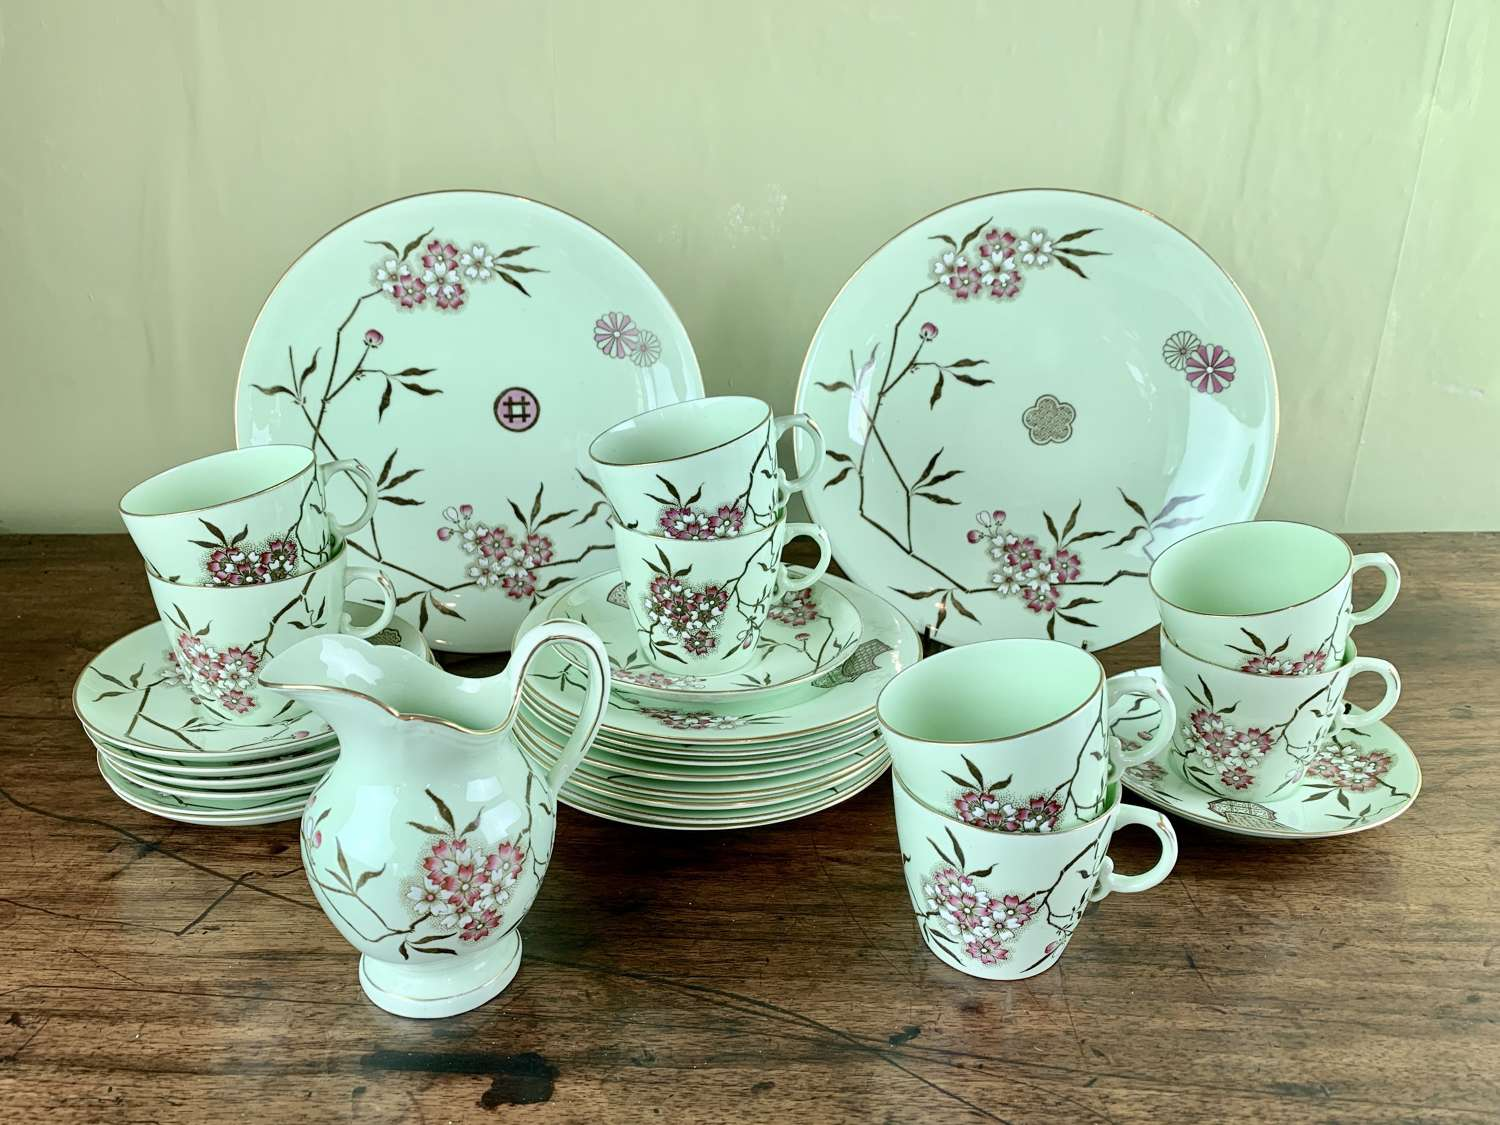 Powell, Bishop & Stonier Tea Service circa 1880